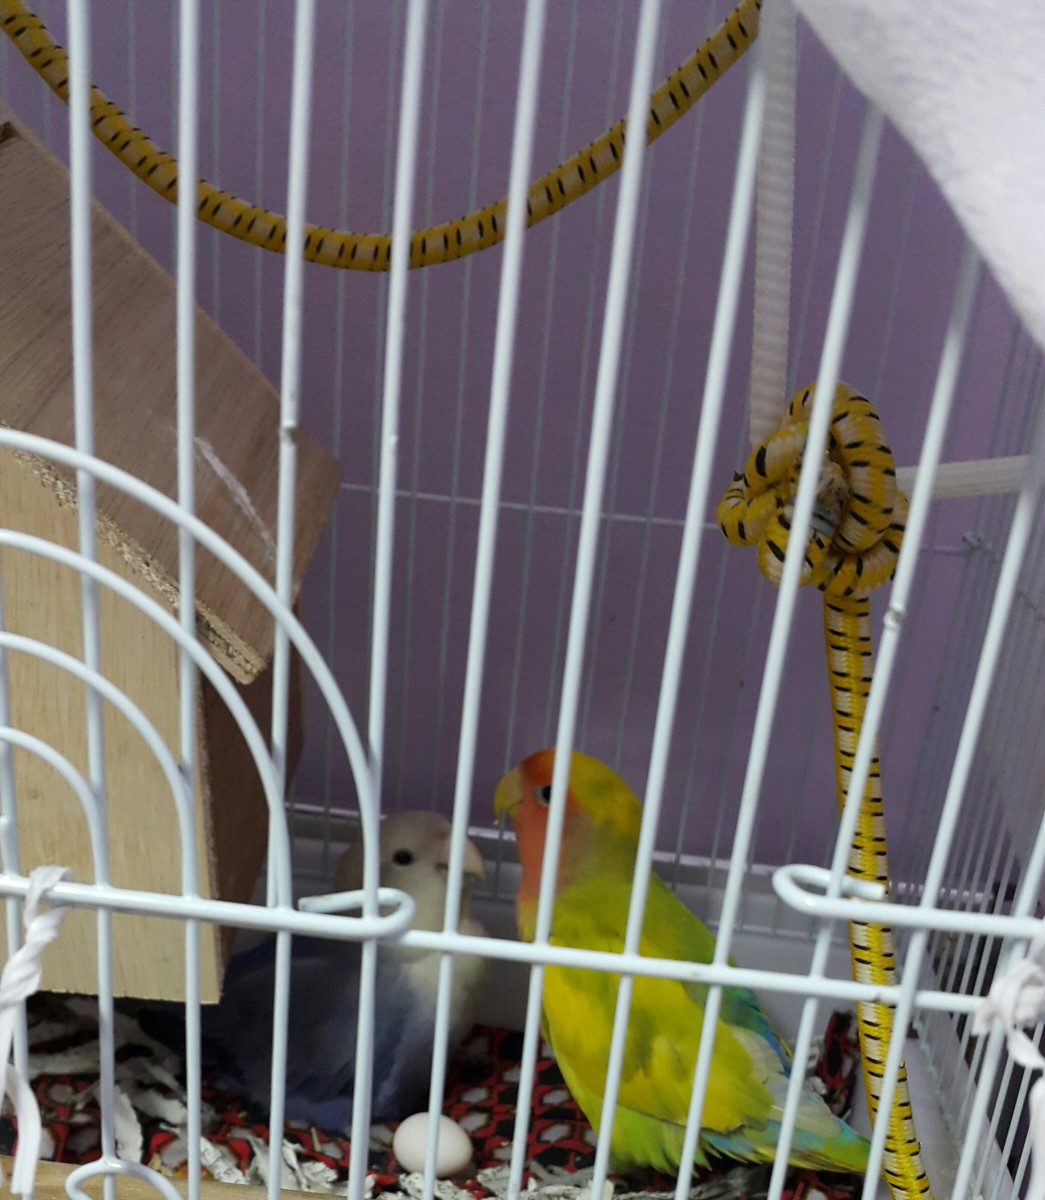 Lovebirds may get cautious (when their chick is born) when we come closer to their cage.